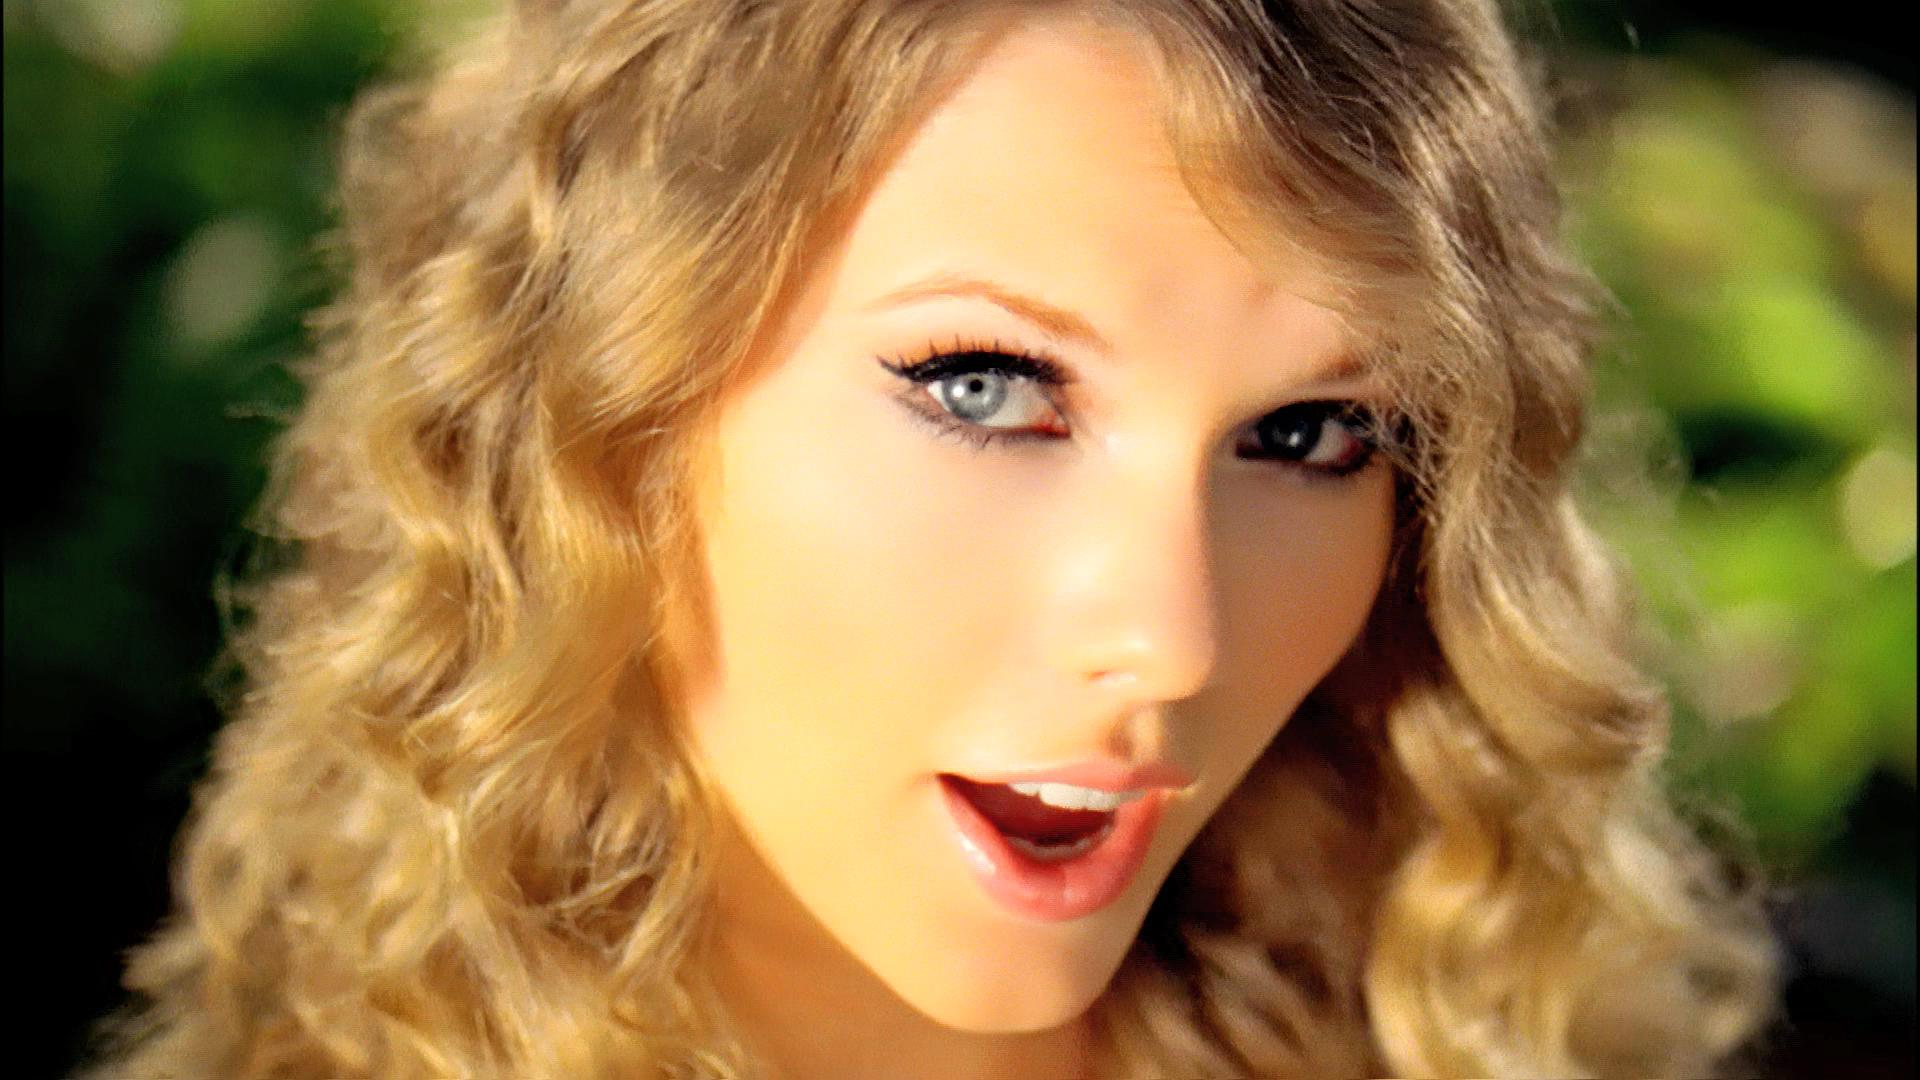 Taylor-swift-beautiful-pic